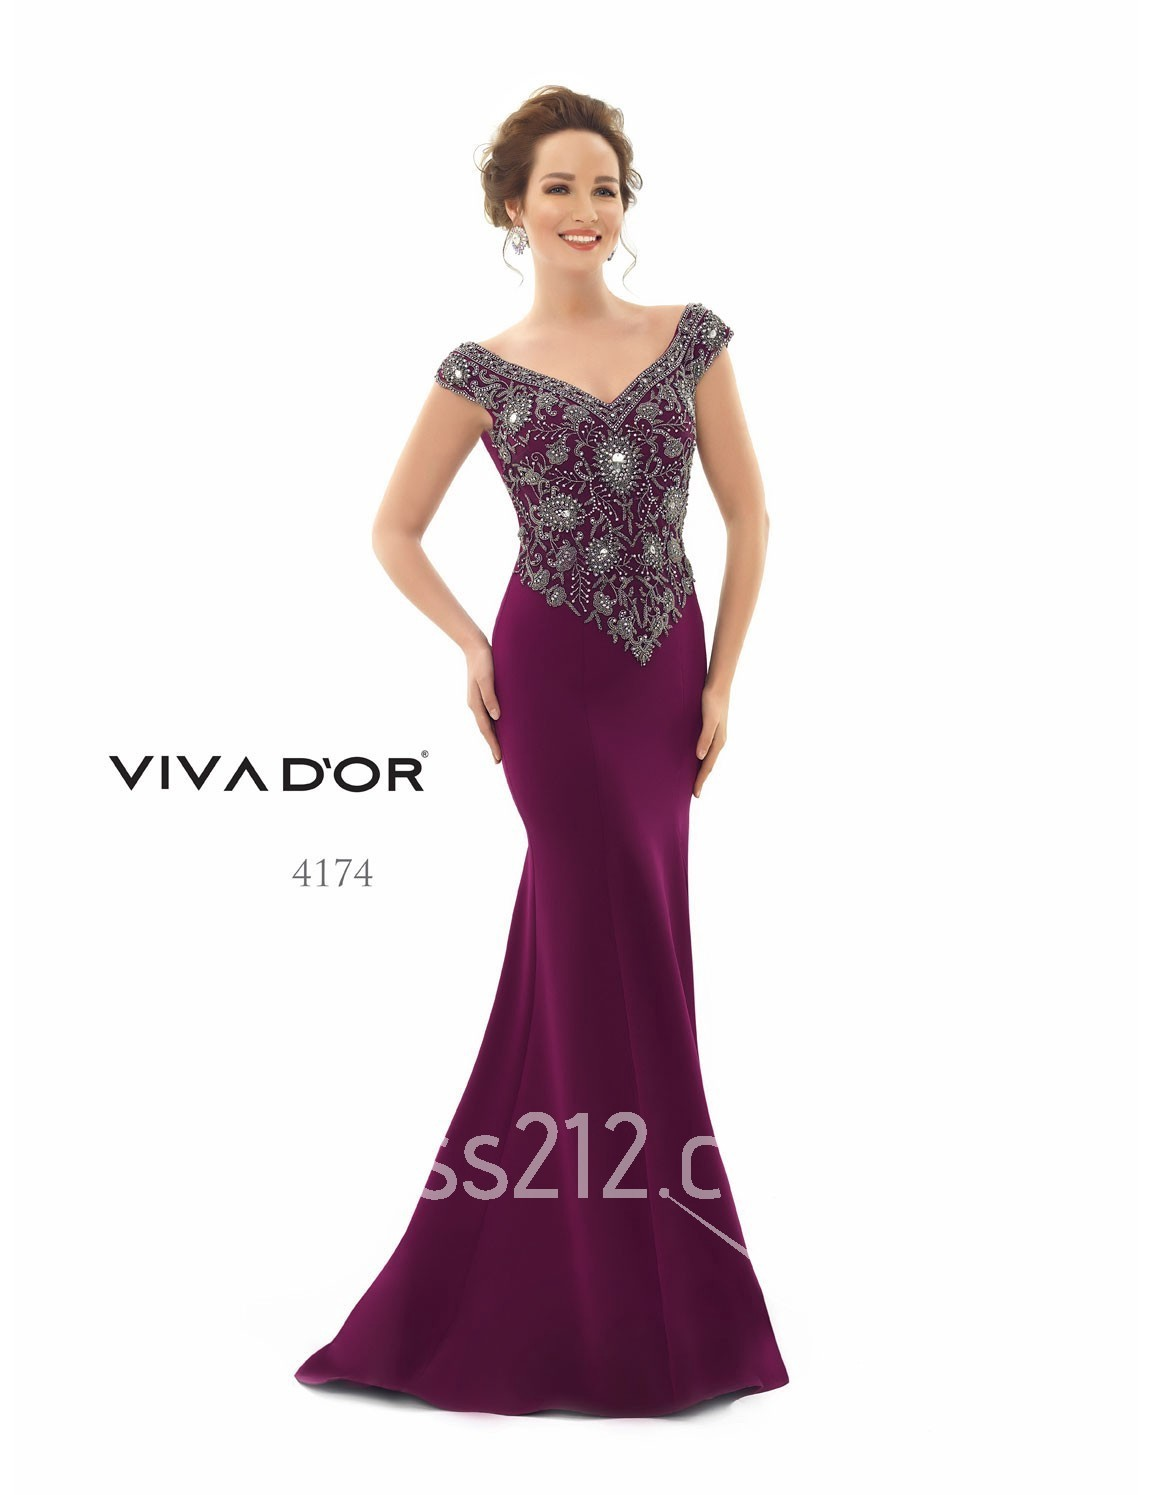 Buy Online Celebrity Dresses Dress212 Llc Medium